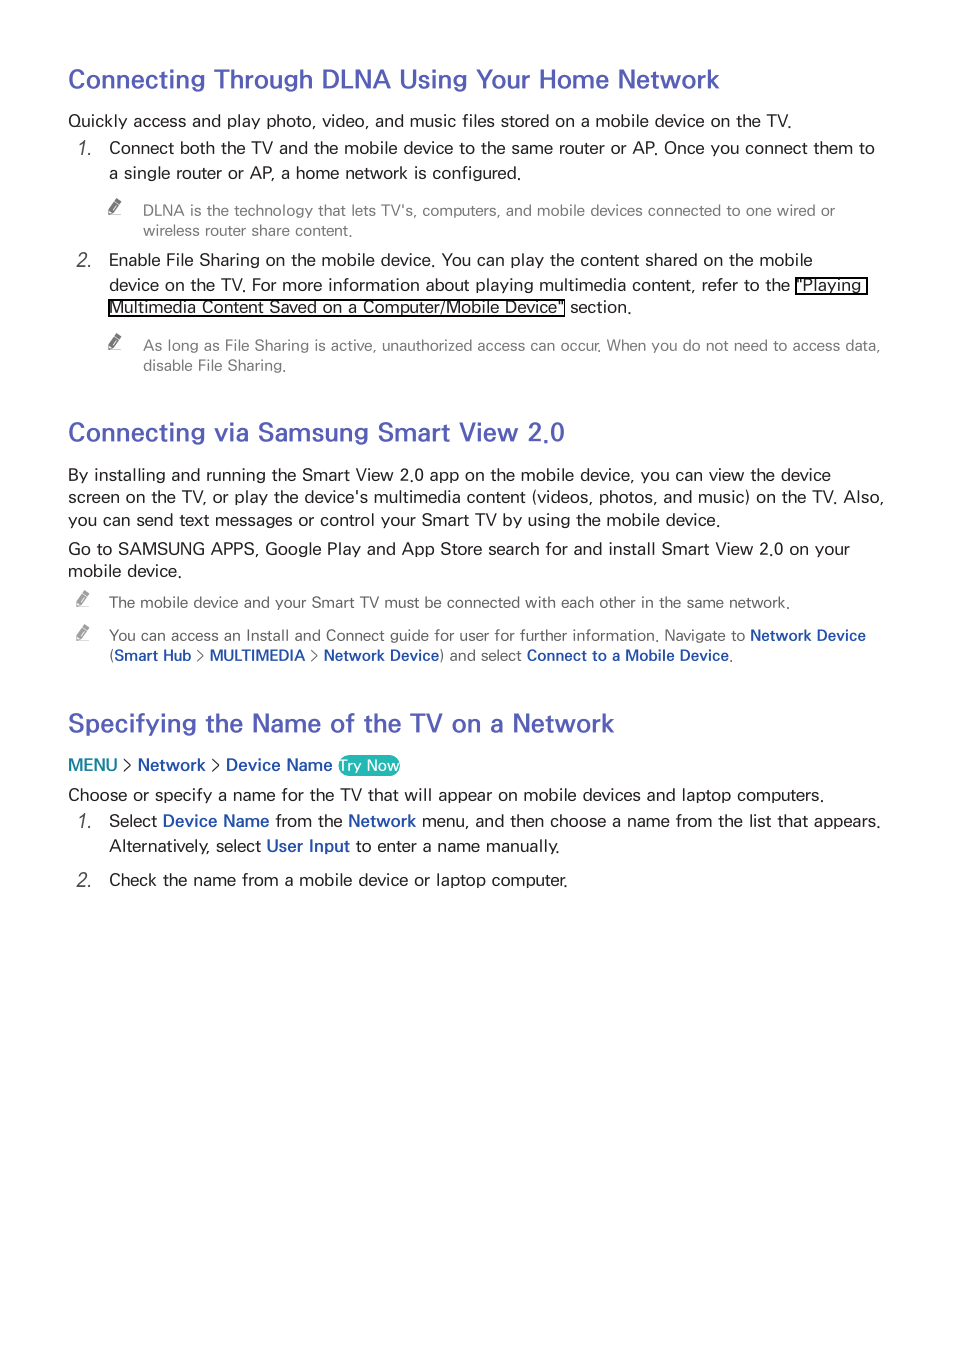 Samsung smart view 2 0 for pc | Smart View 2 0 is not available for